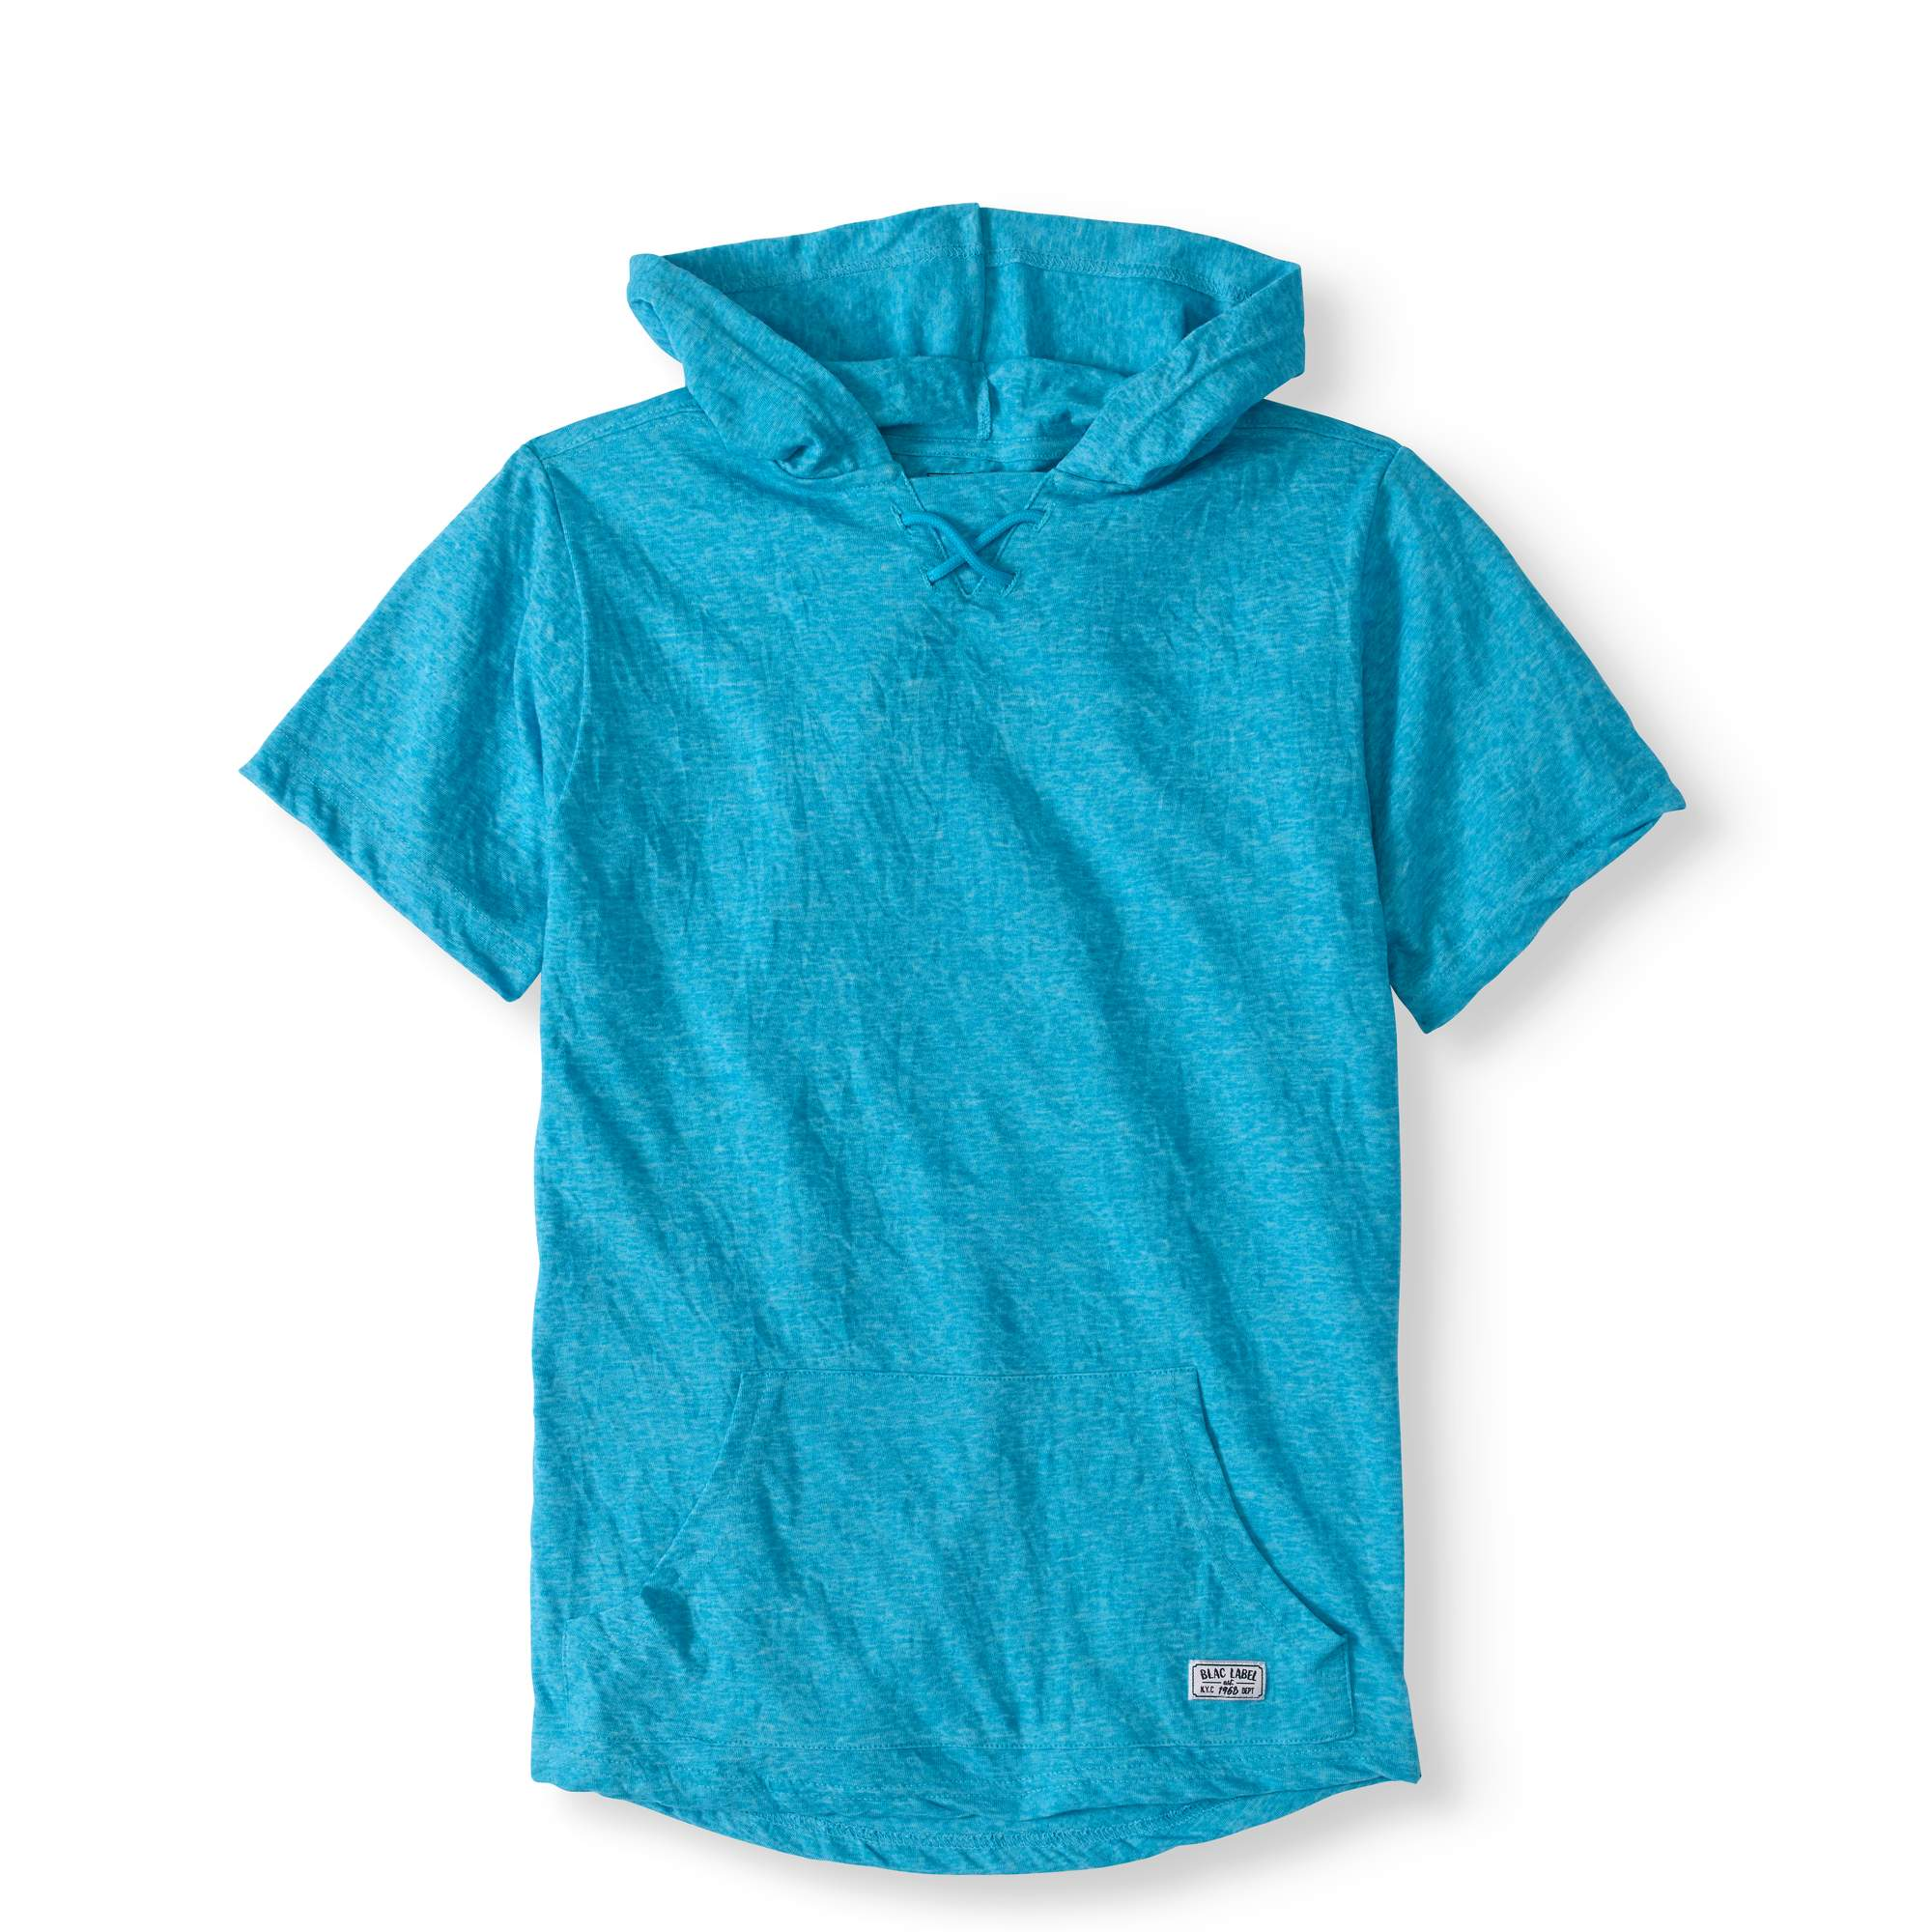 Big Boy Hooded Injected Slub Lace Up Tee With Kangaroo Pocket